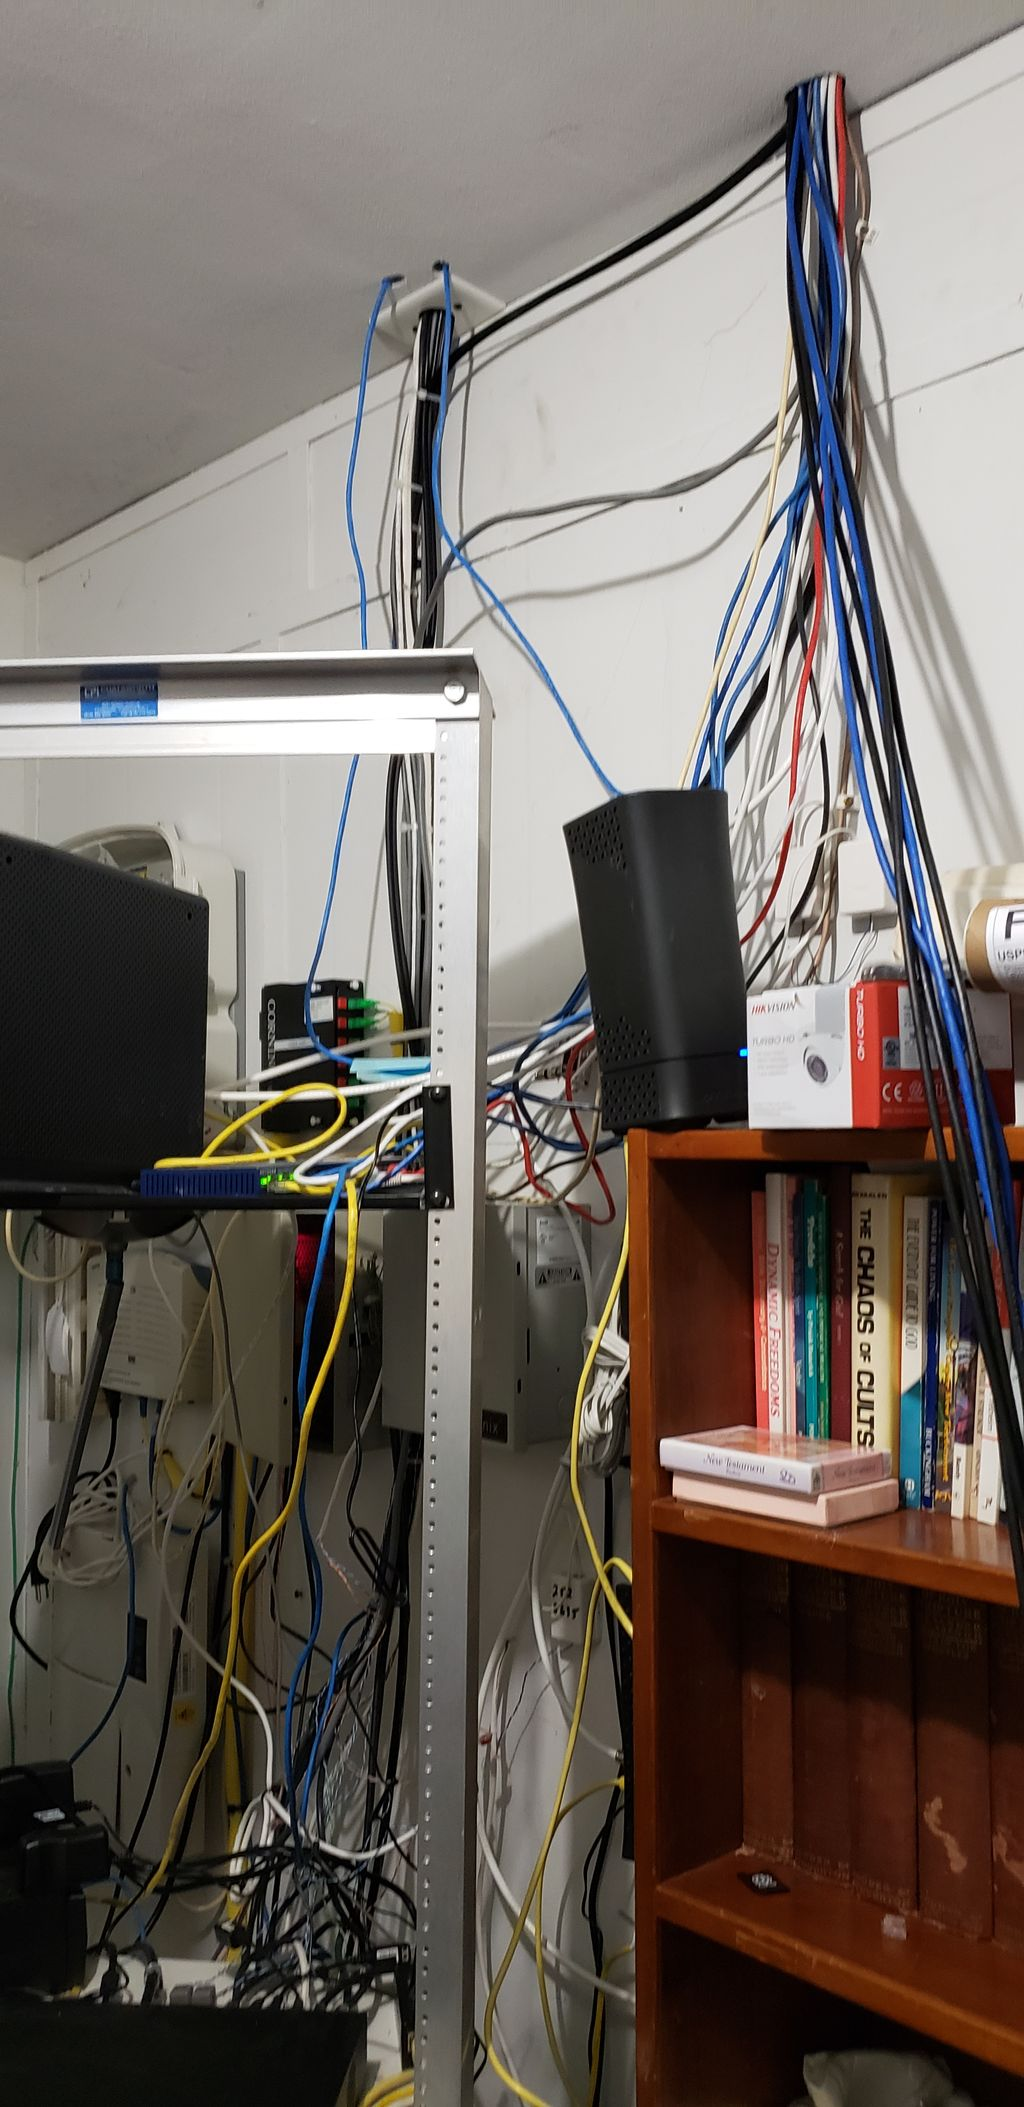 Network upgrade and wiring clean up